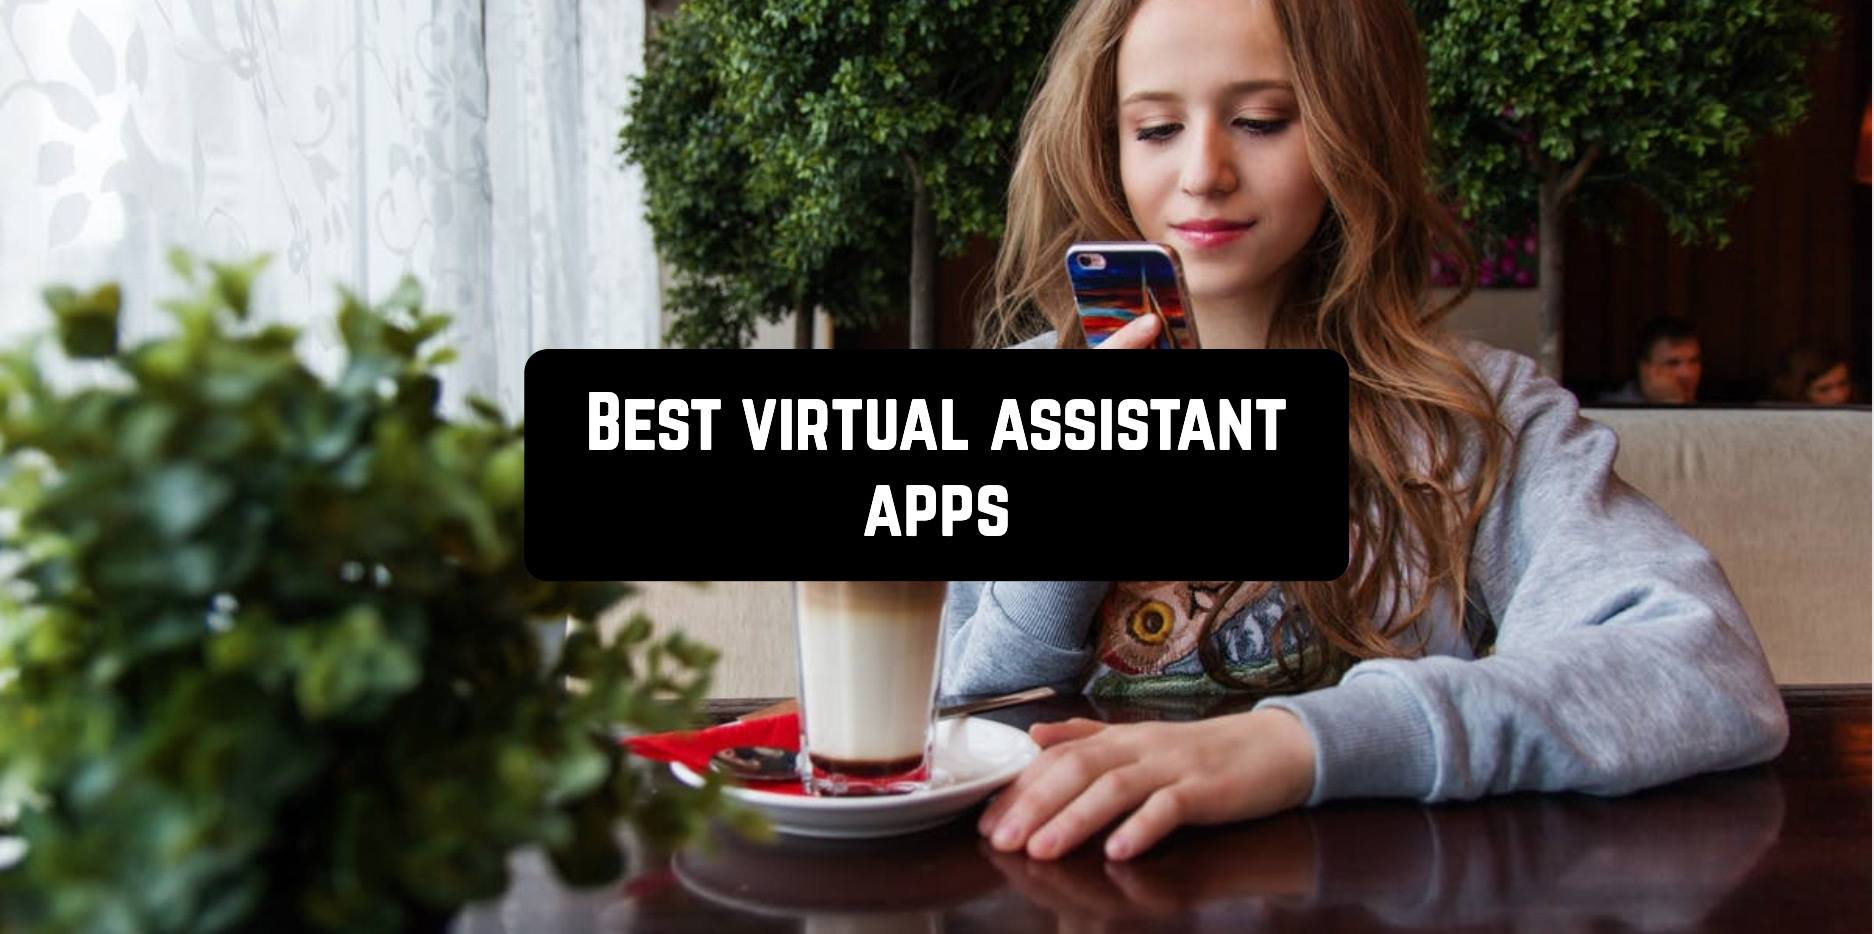 Best virtual assistant apps